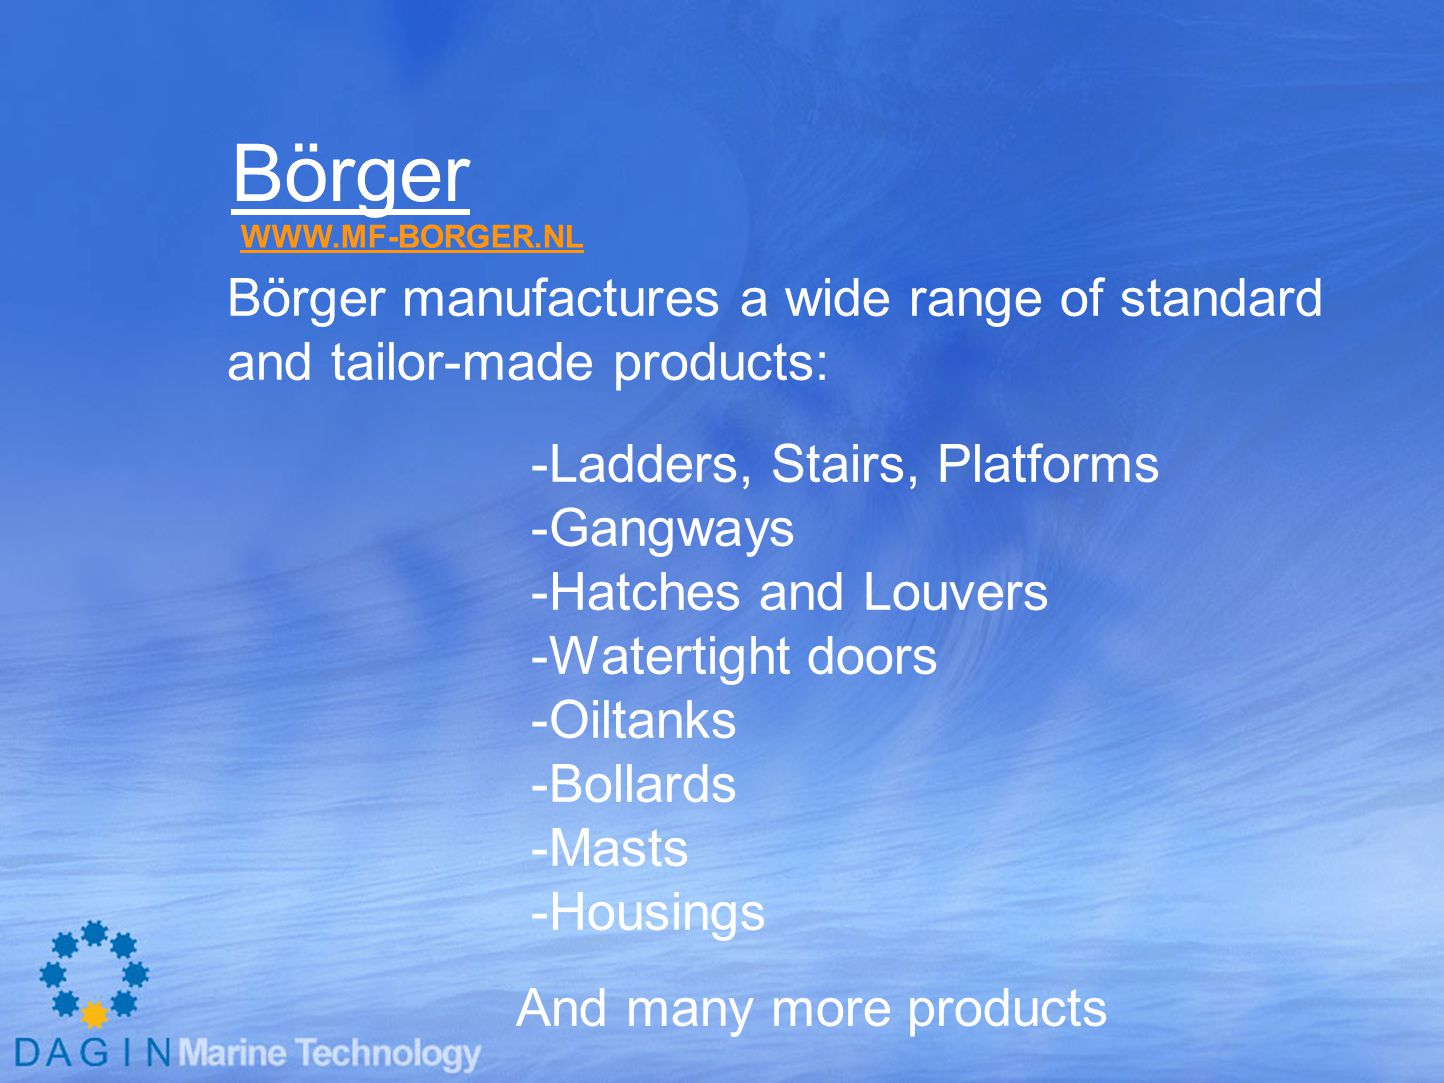 Börger Börger manufactures a wide range of standard